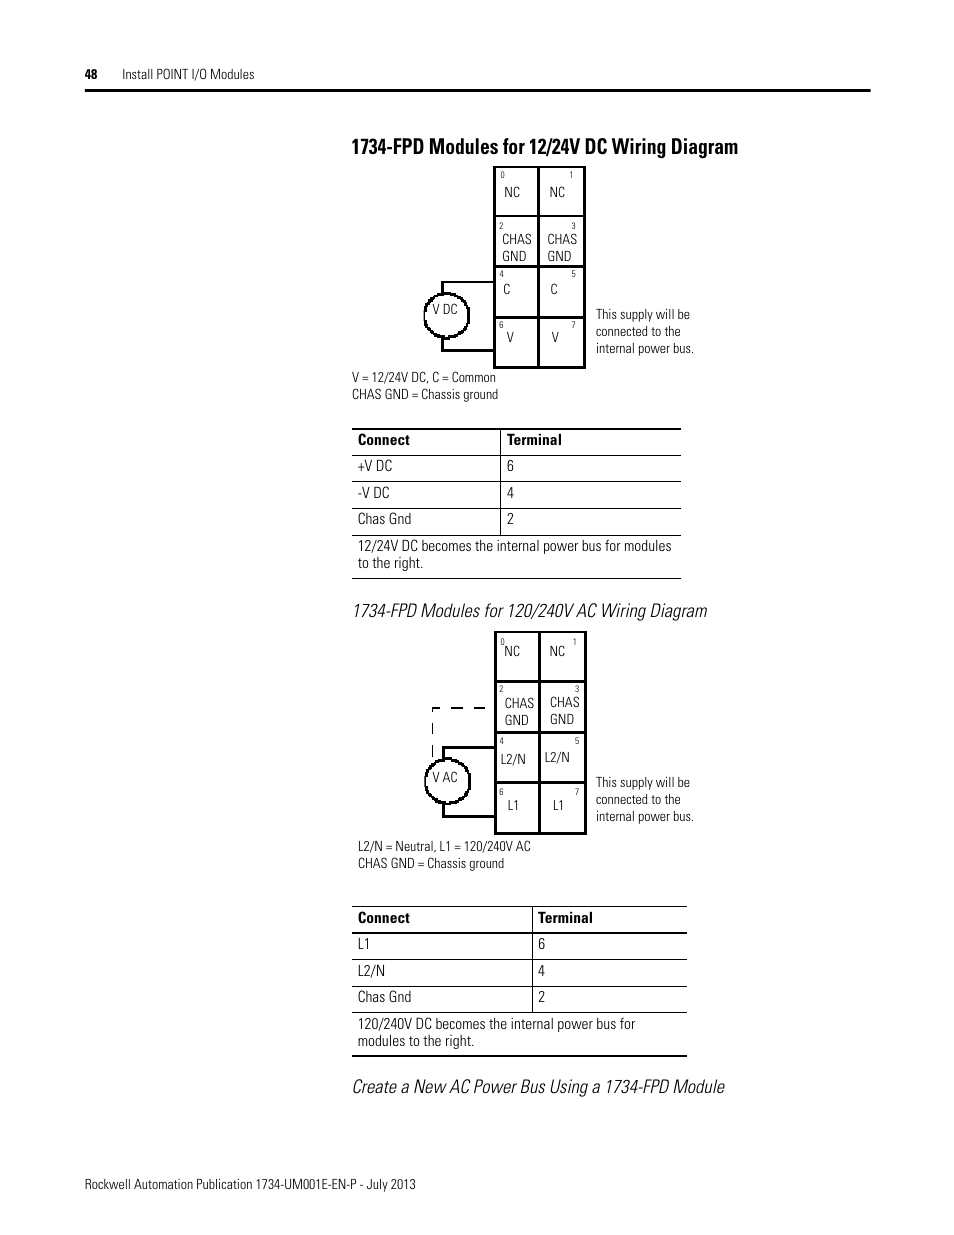 1734-fpd modules for 12/24v dc wiring diagram, 1734-fpd